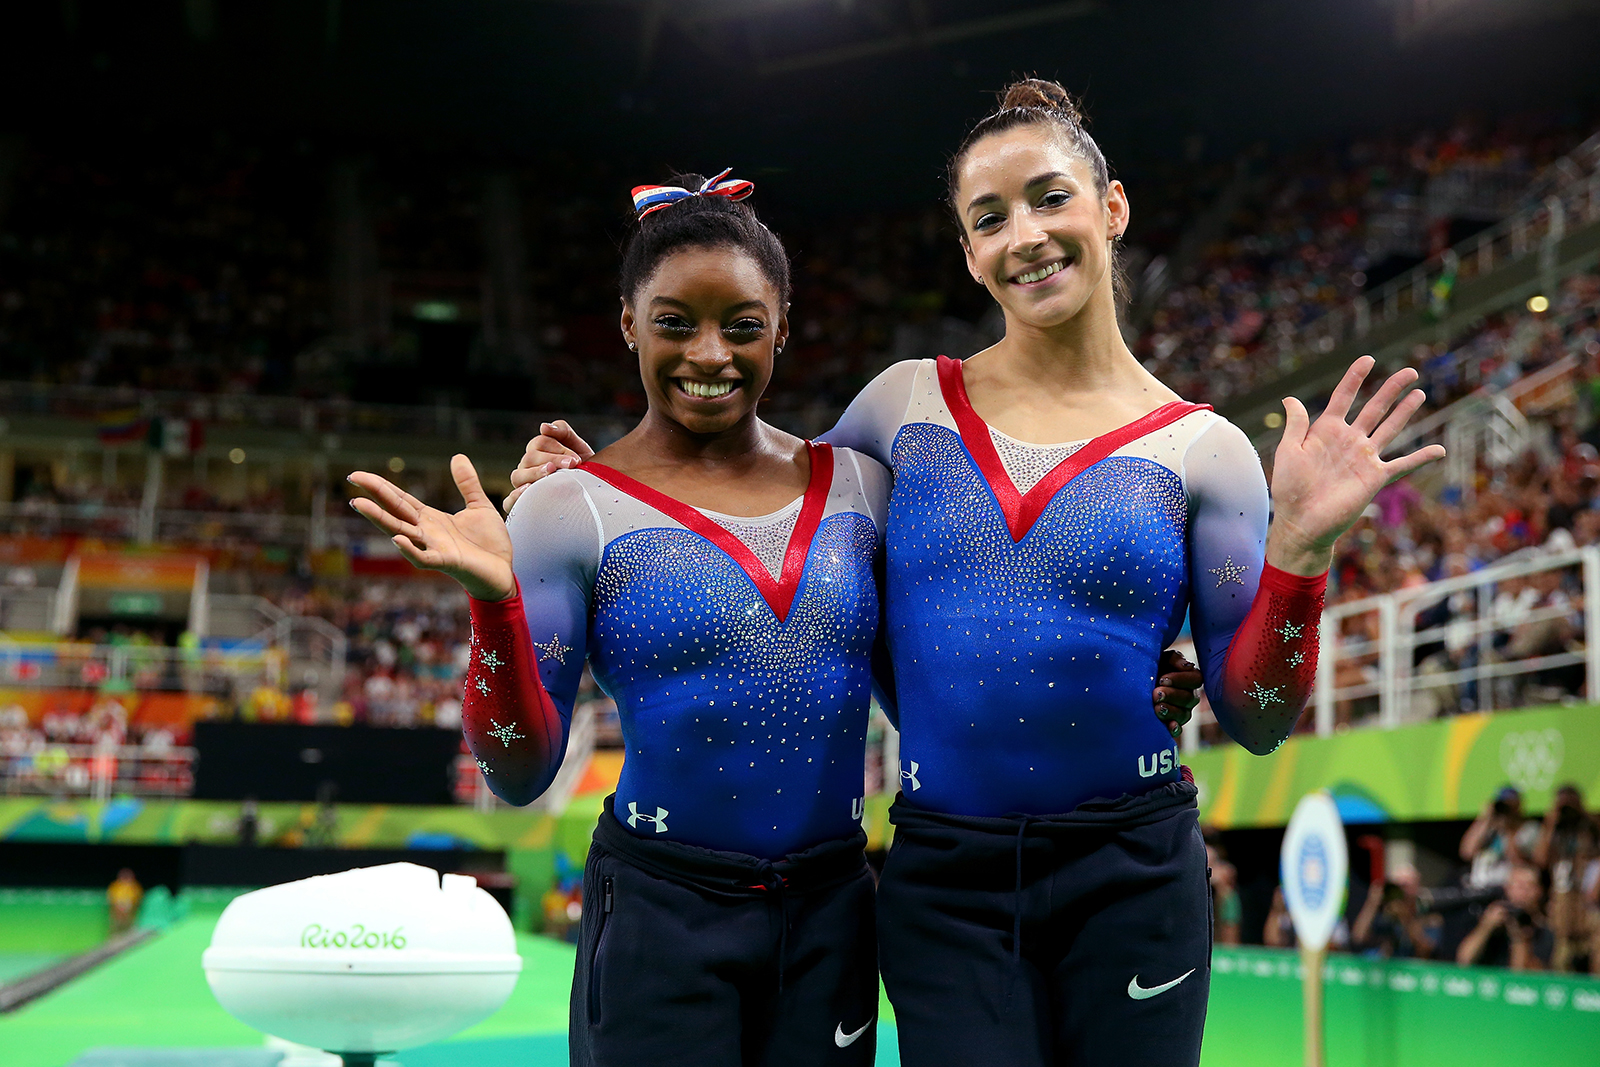 Simone Biles and Aly Raisman pose after winning the gold and silver medals respectively after competing on the Women's Floor Final on Day 11 of the Rio 2016 Olympic Games on August 16, 2016 in Rio de Janeiro, Brazil.